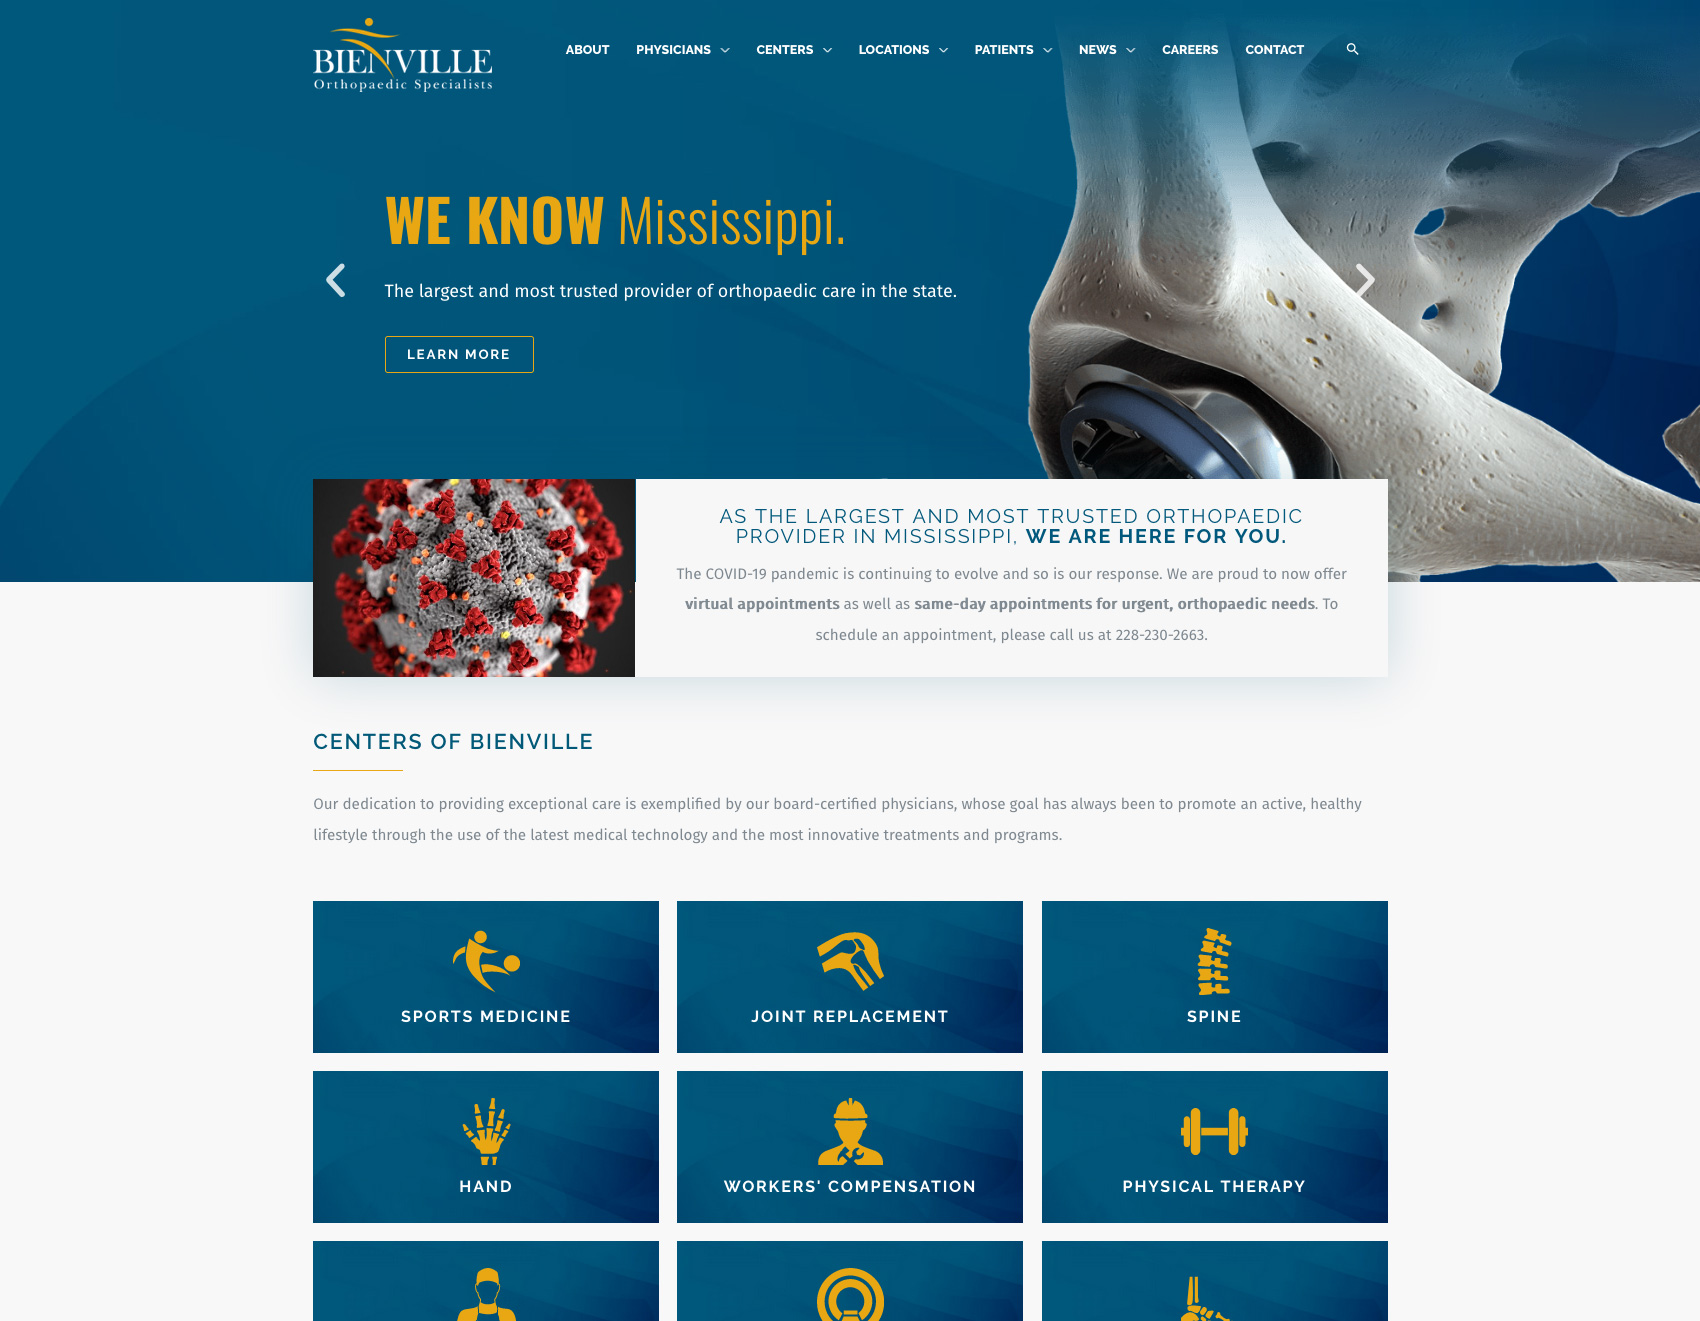 Bienville Orthopaedic Specialists